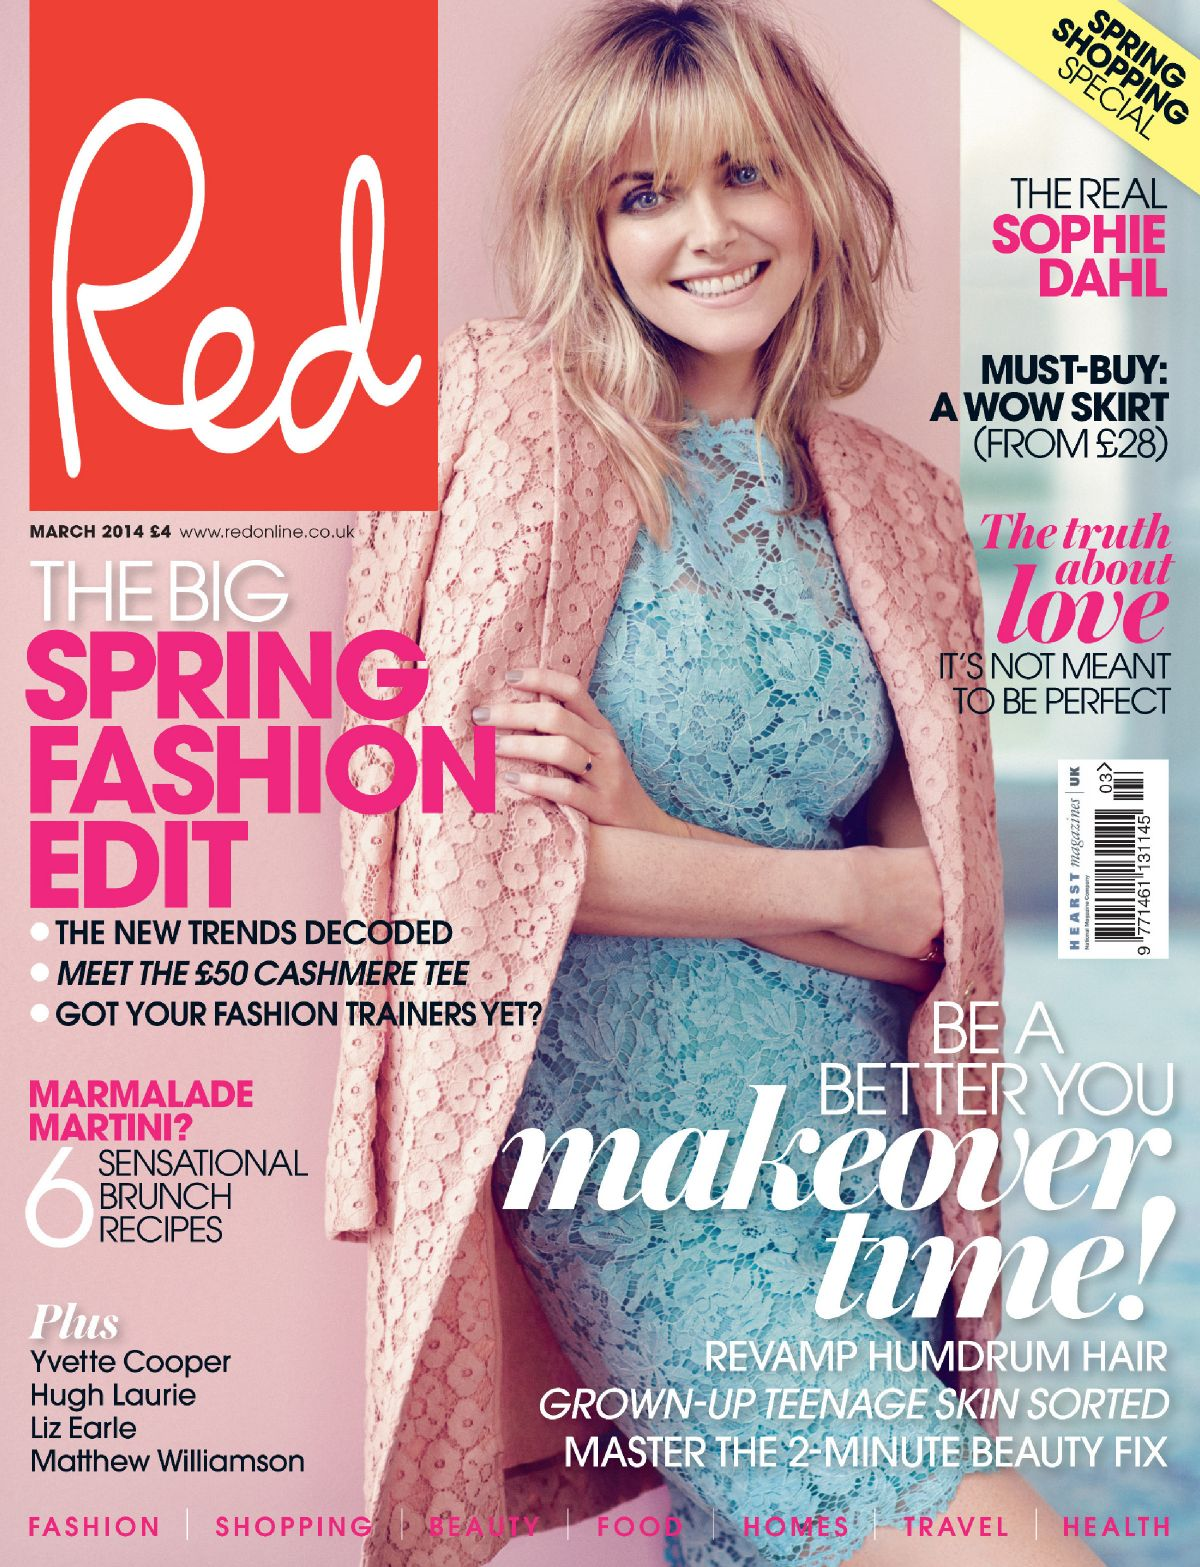 SOPHIE DAHL on the Cover of Red Magazine, UK March 2014 Issue